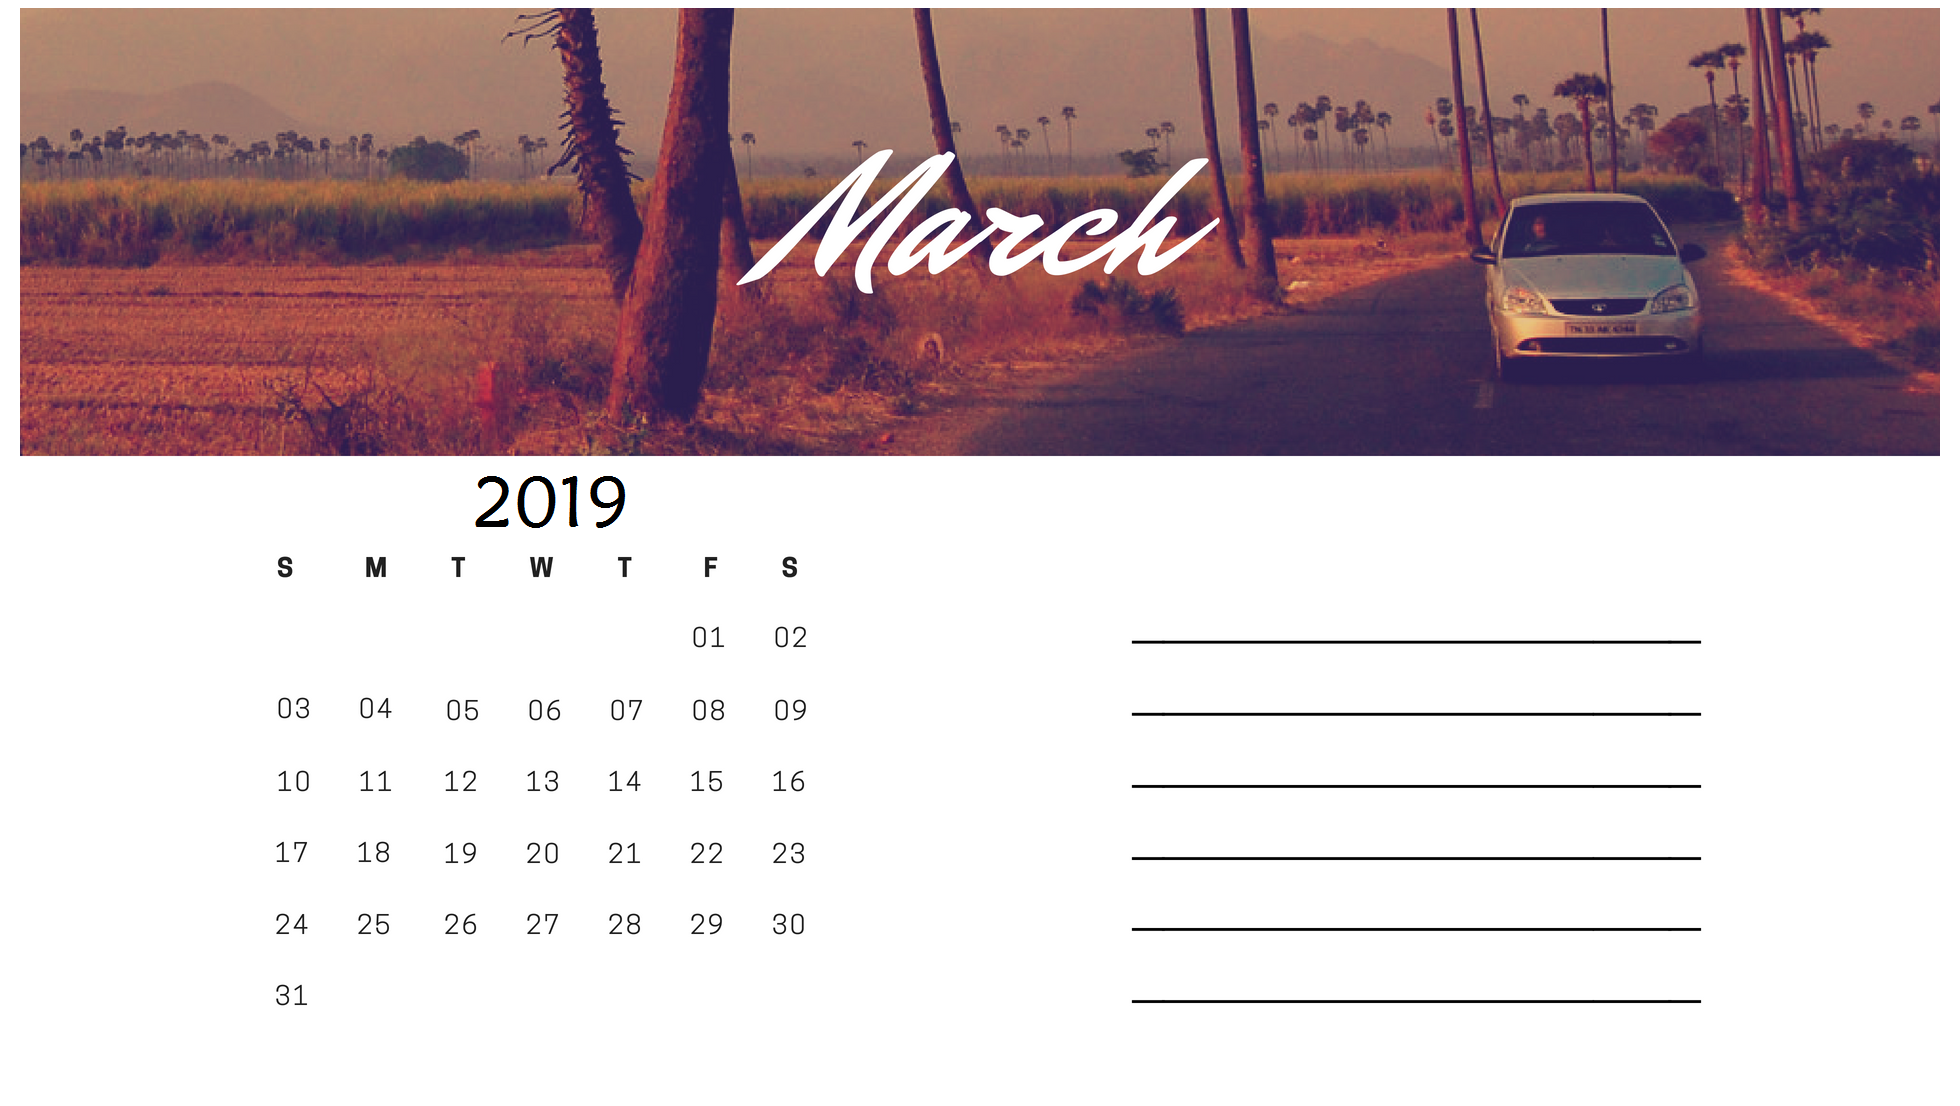 New March 2019 Calendar Design